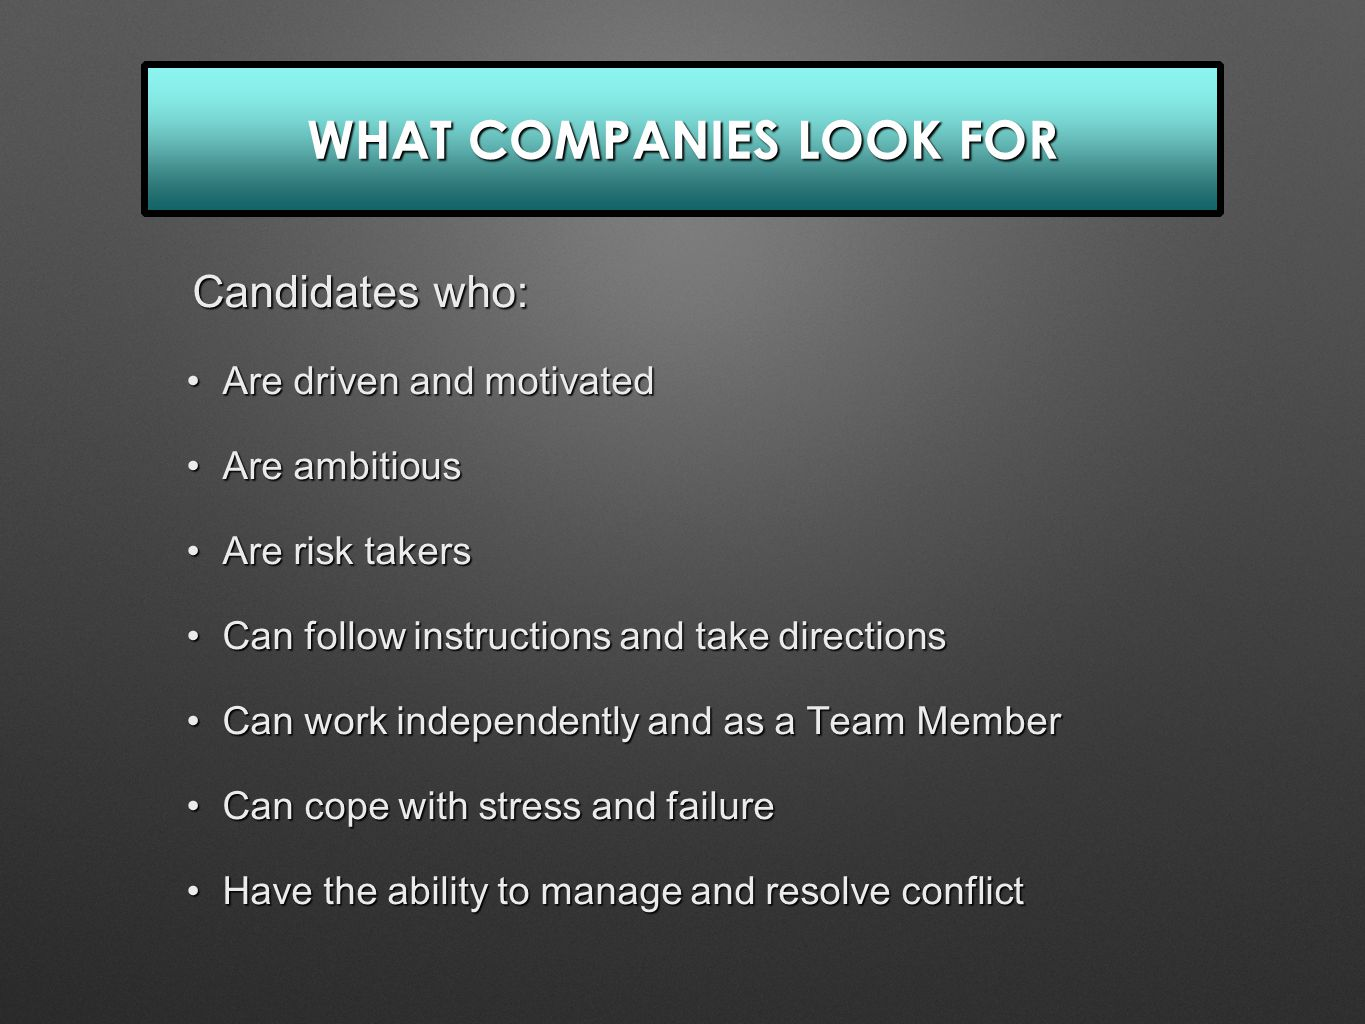 WHAT COMPANIES LOOK FOR Candidates who: Candidates who: Are driven and motivatedAre driven and motivated Are ambitiousAre ambitious Are risk takersAre risk takers Can follow instructions and take directionsCan follow instructions and take directions Can work independently and as a Team MemberCan work independently and as a Team Member Can cope with stress and failureCan cope with stress and failure Have the ability to manage and resolve conflictHave the ability to manage and resolve conflict